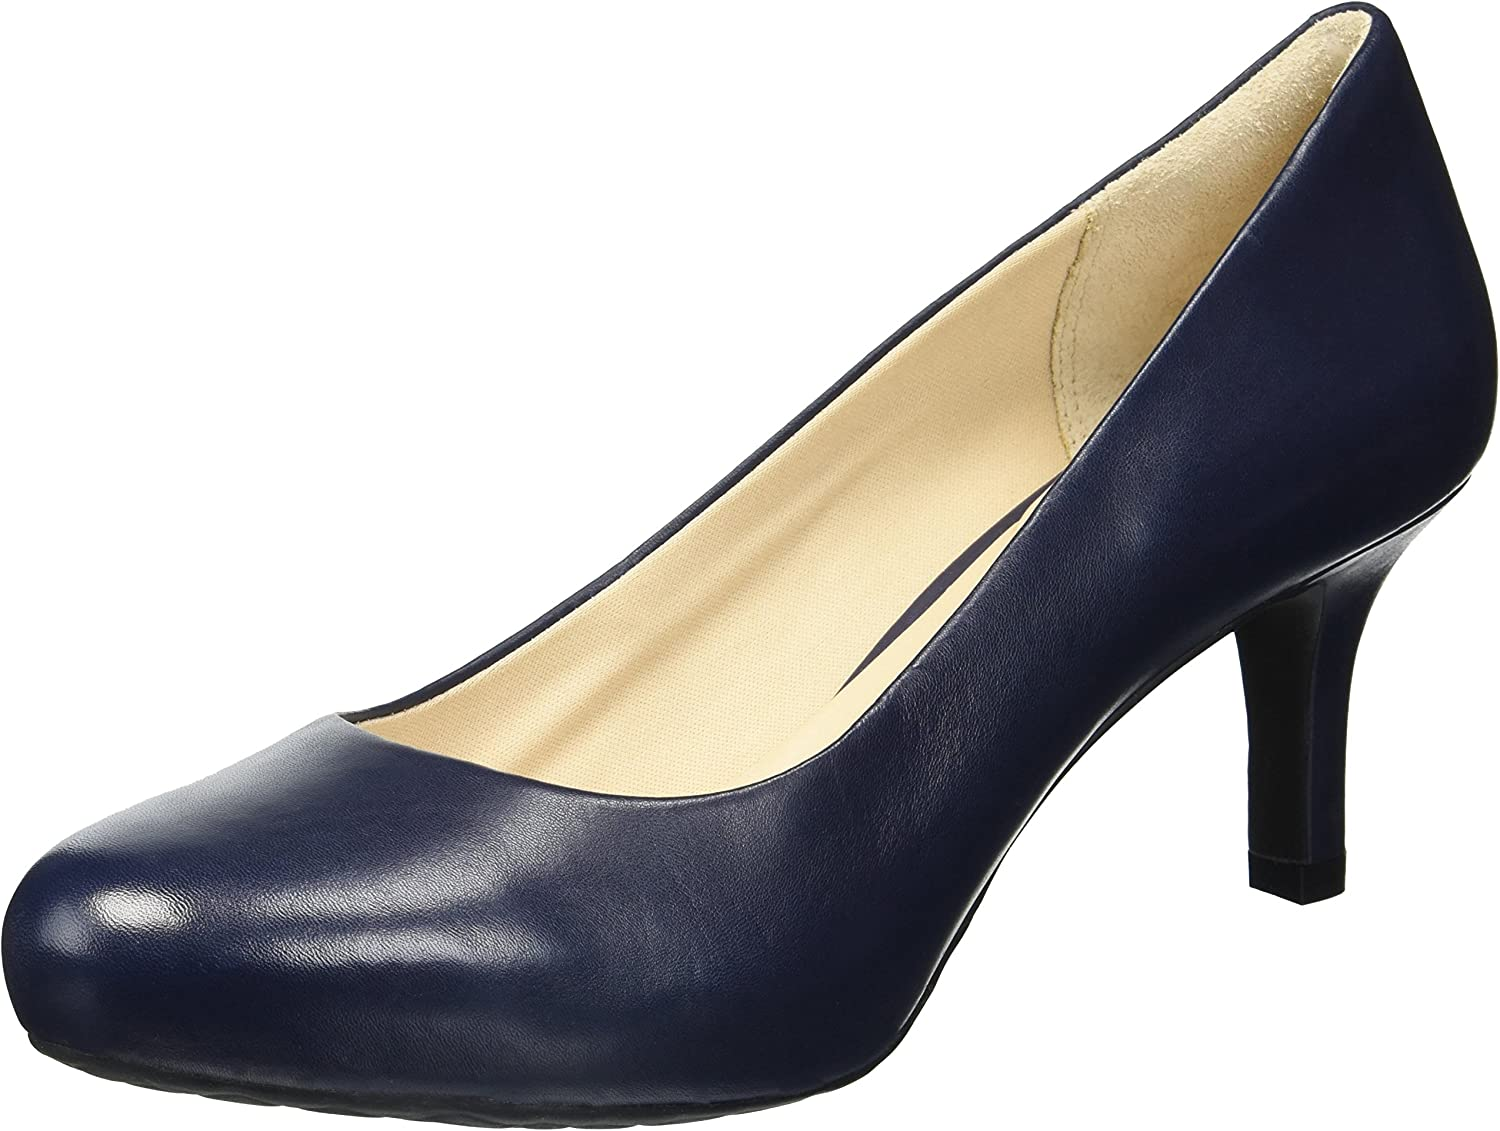 Rockport Womens Seven to 7 65mm Pump Pump